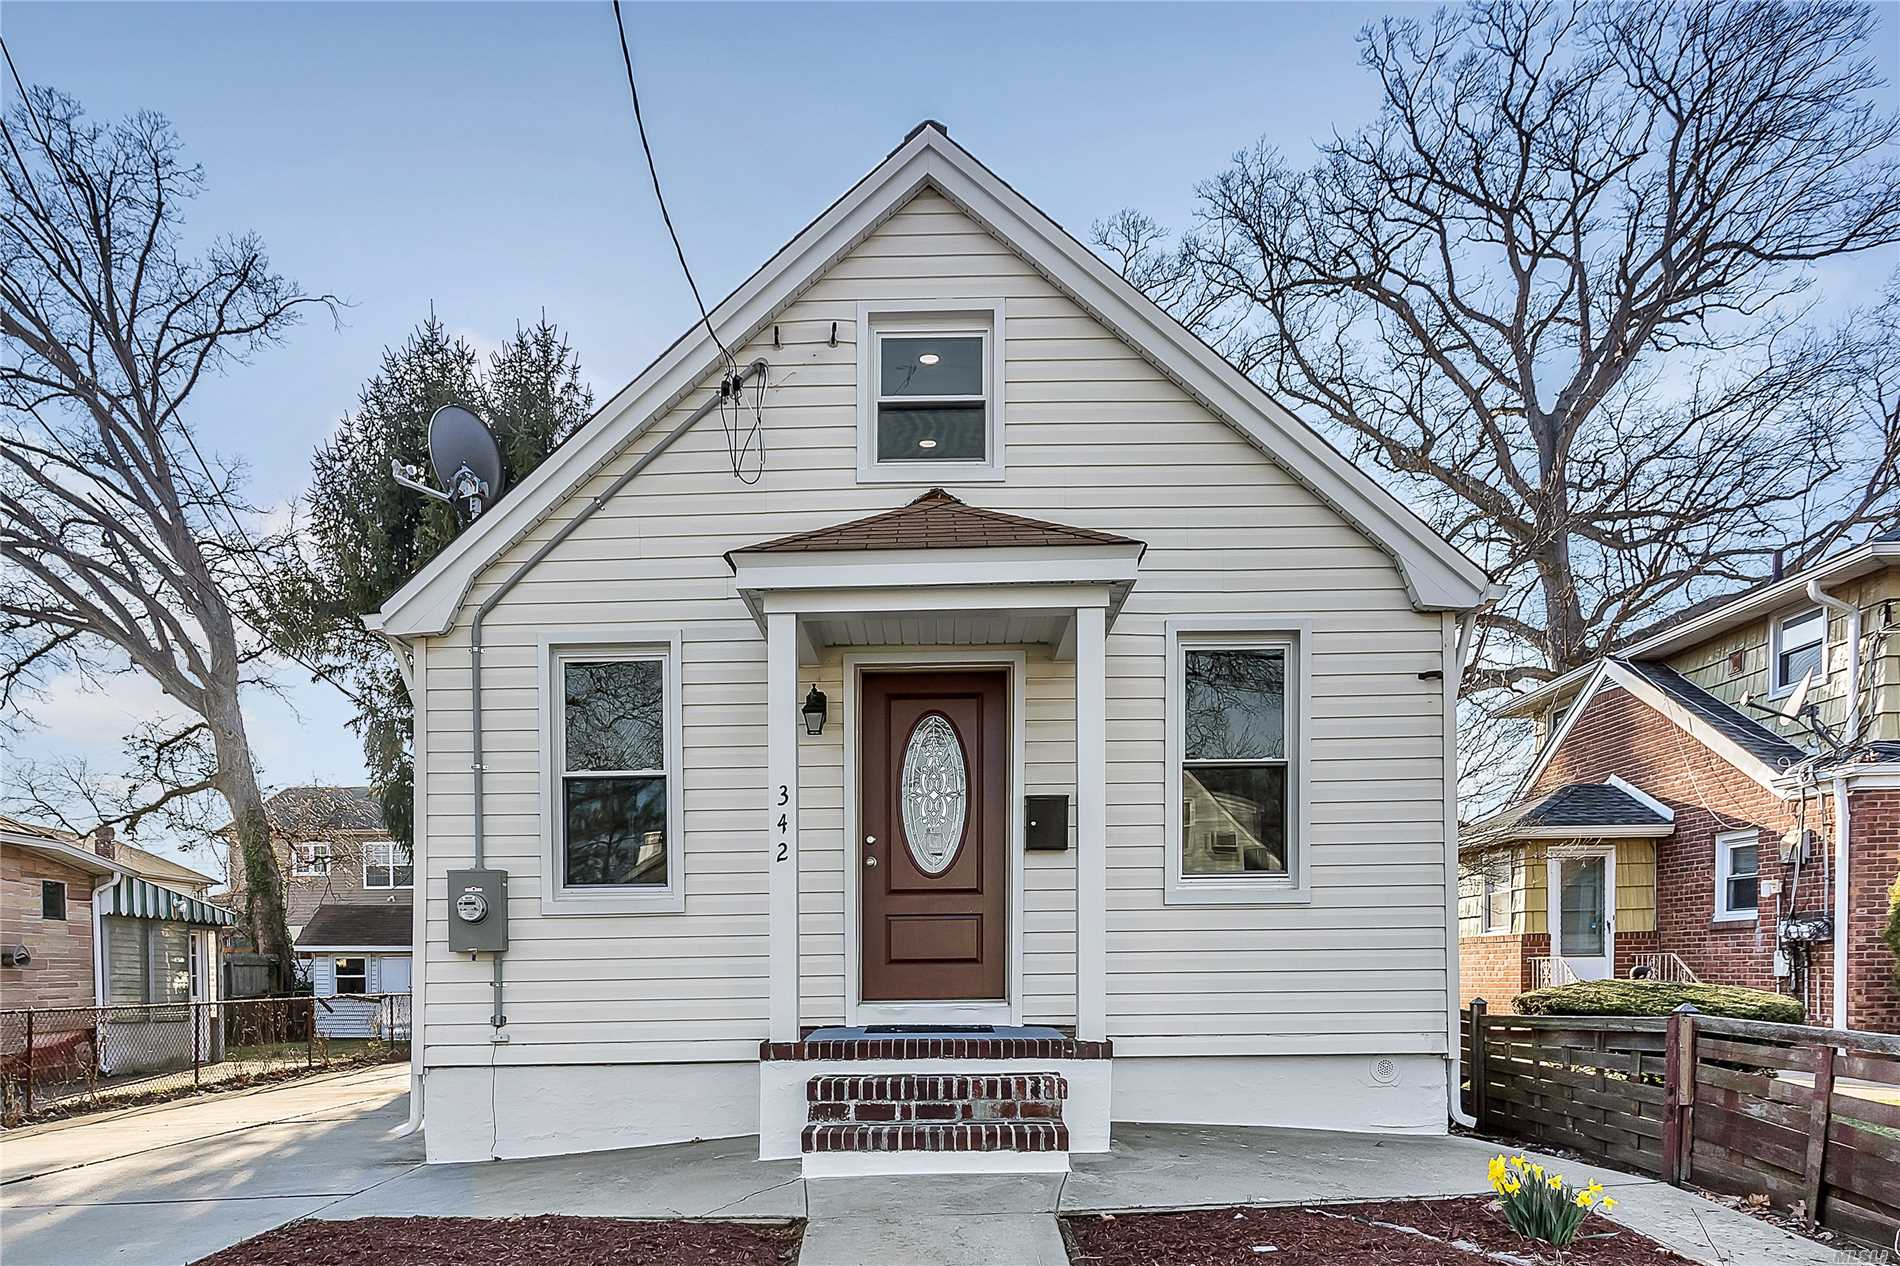 Beautiful gut renovated house in Elmont! All new plumbing, electric, tankless navien boiler, new windows, new kitchen, new Bathroom, new floors etc.. LOW TAXES.